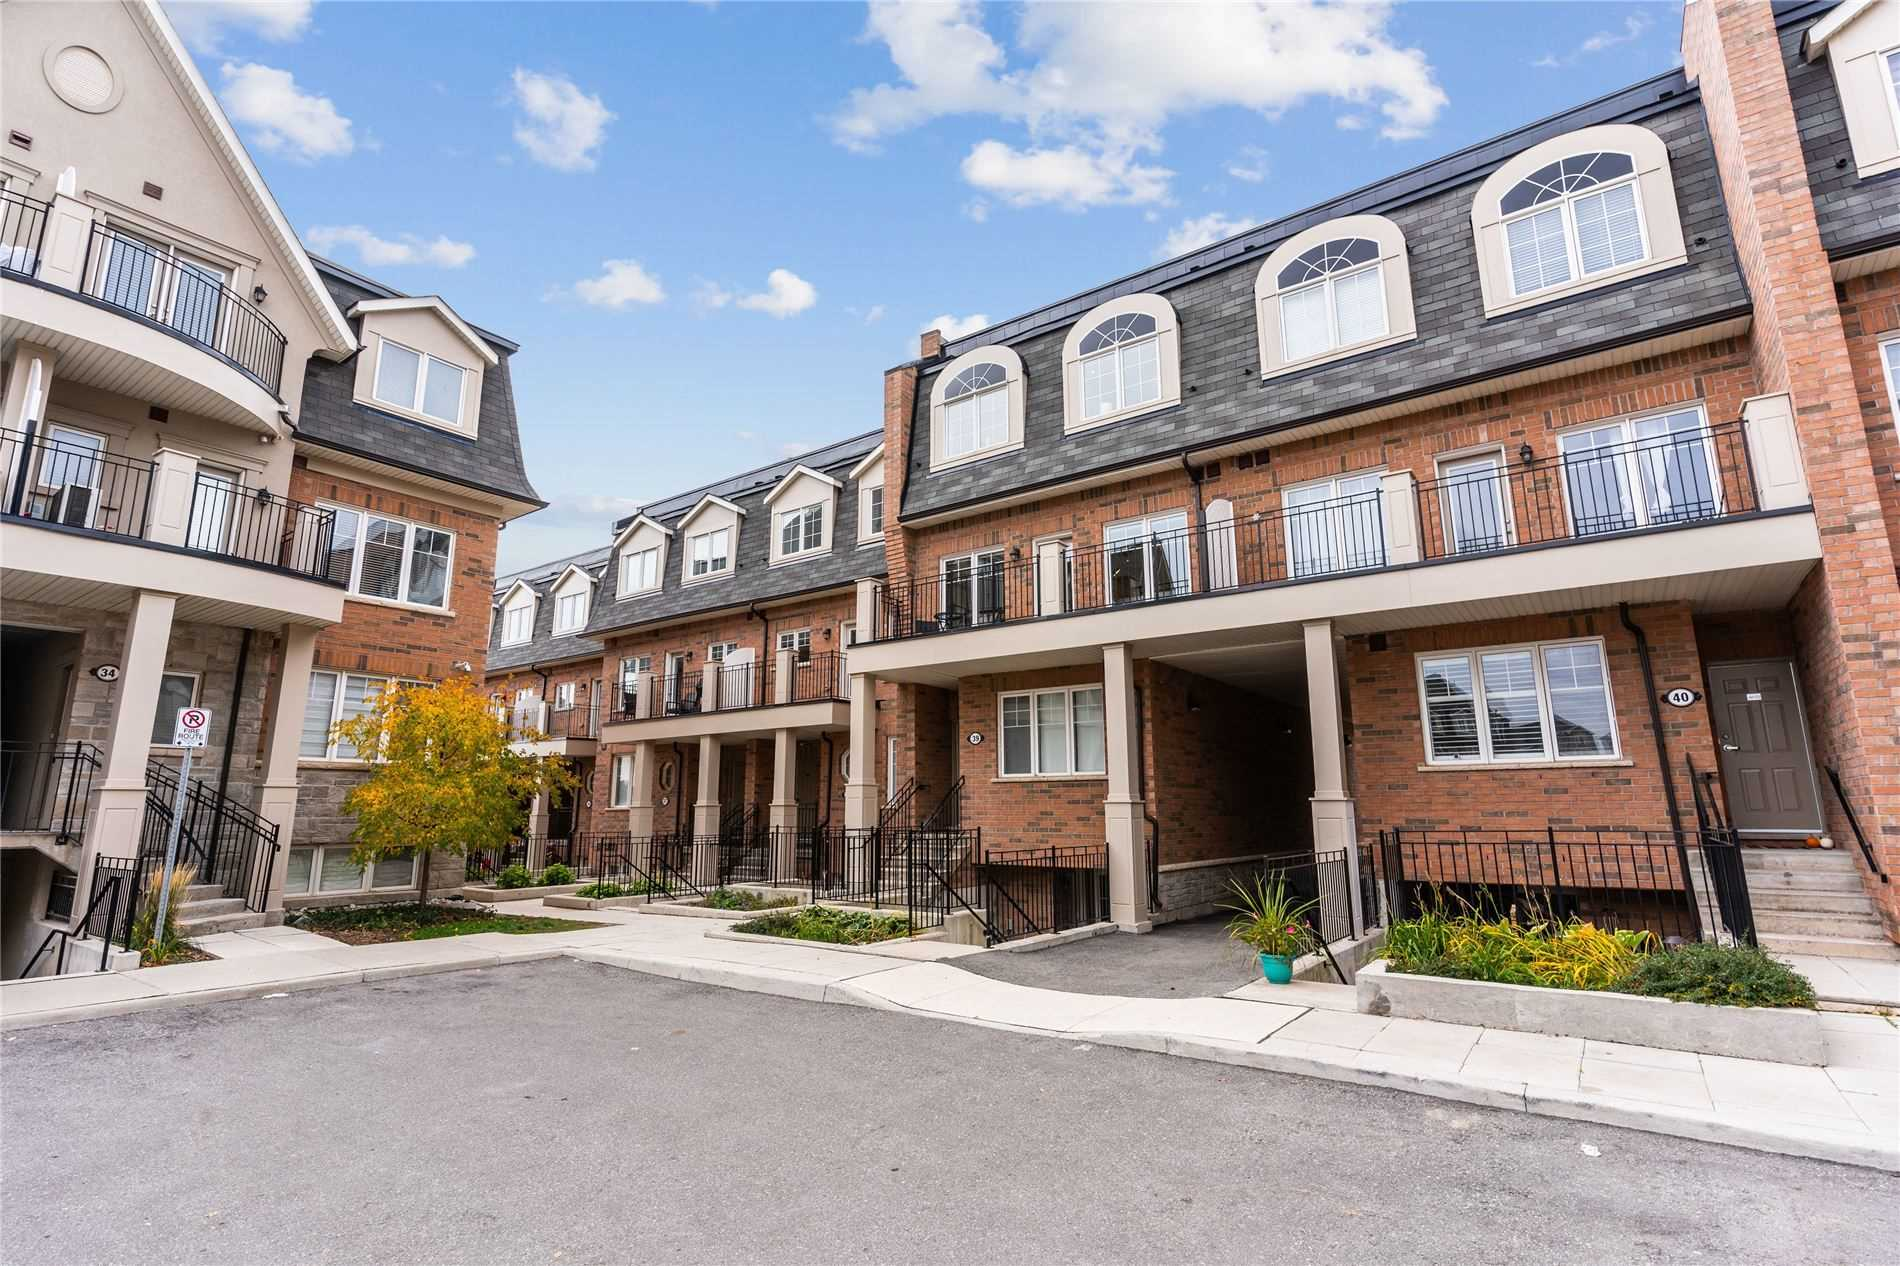 For Sale: 39 03 - 2420 Baronwood Drive, Oakville, ON   2 Bed, 2 Bath Townhouse for $579000.00. See 22 photos!